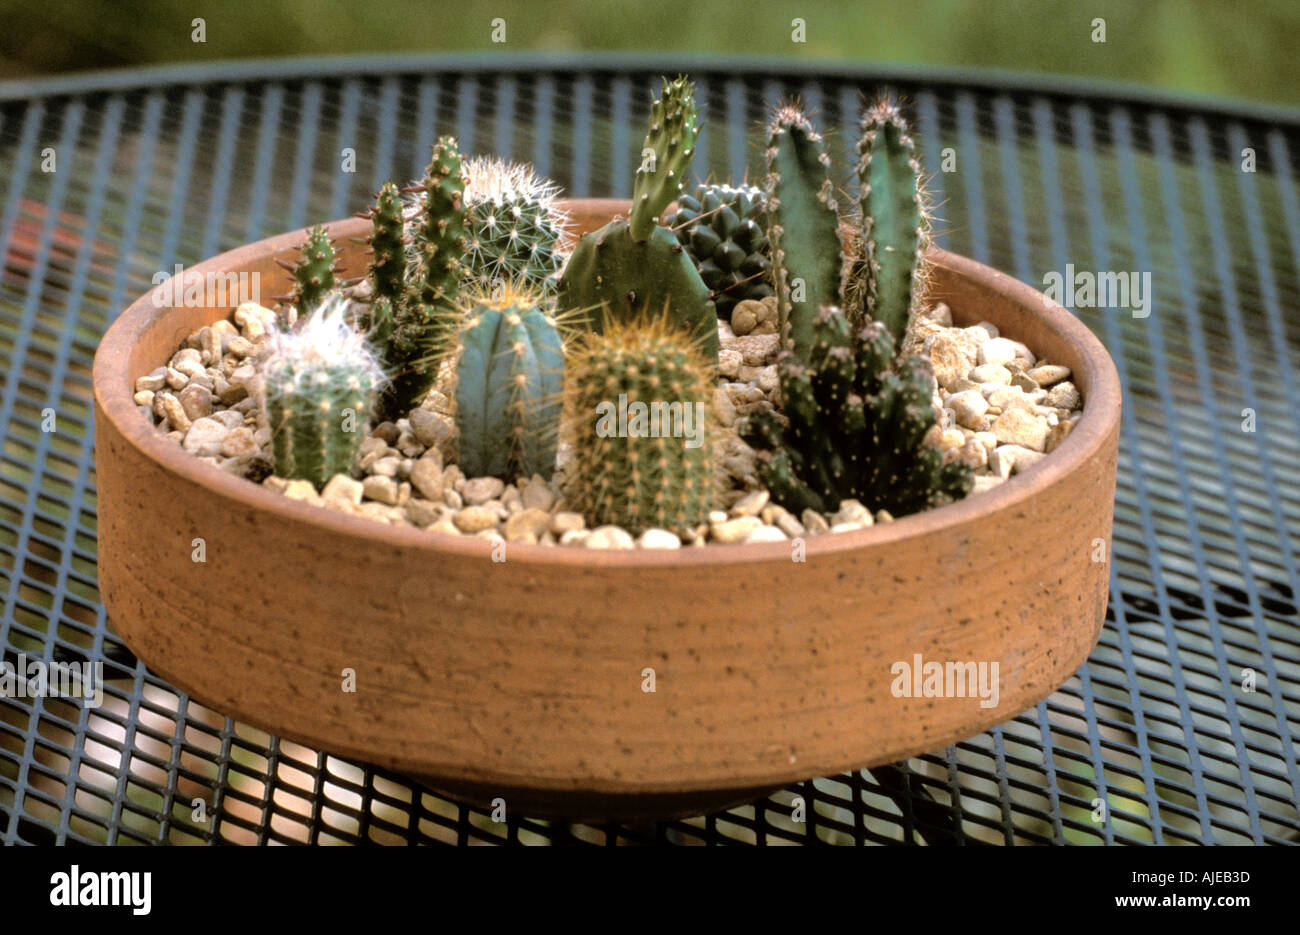 Succulent garden in a pot cactus stock photo 1239868 alamy succulent garden in a pot cactus workwithnaturefo